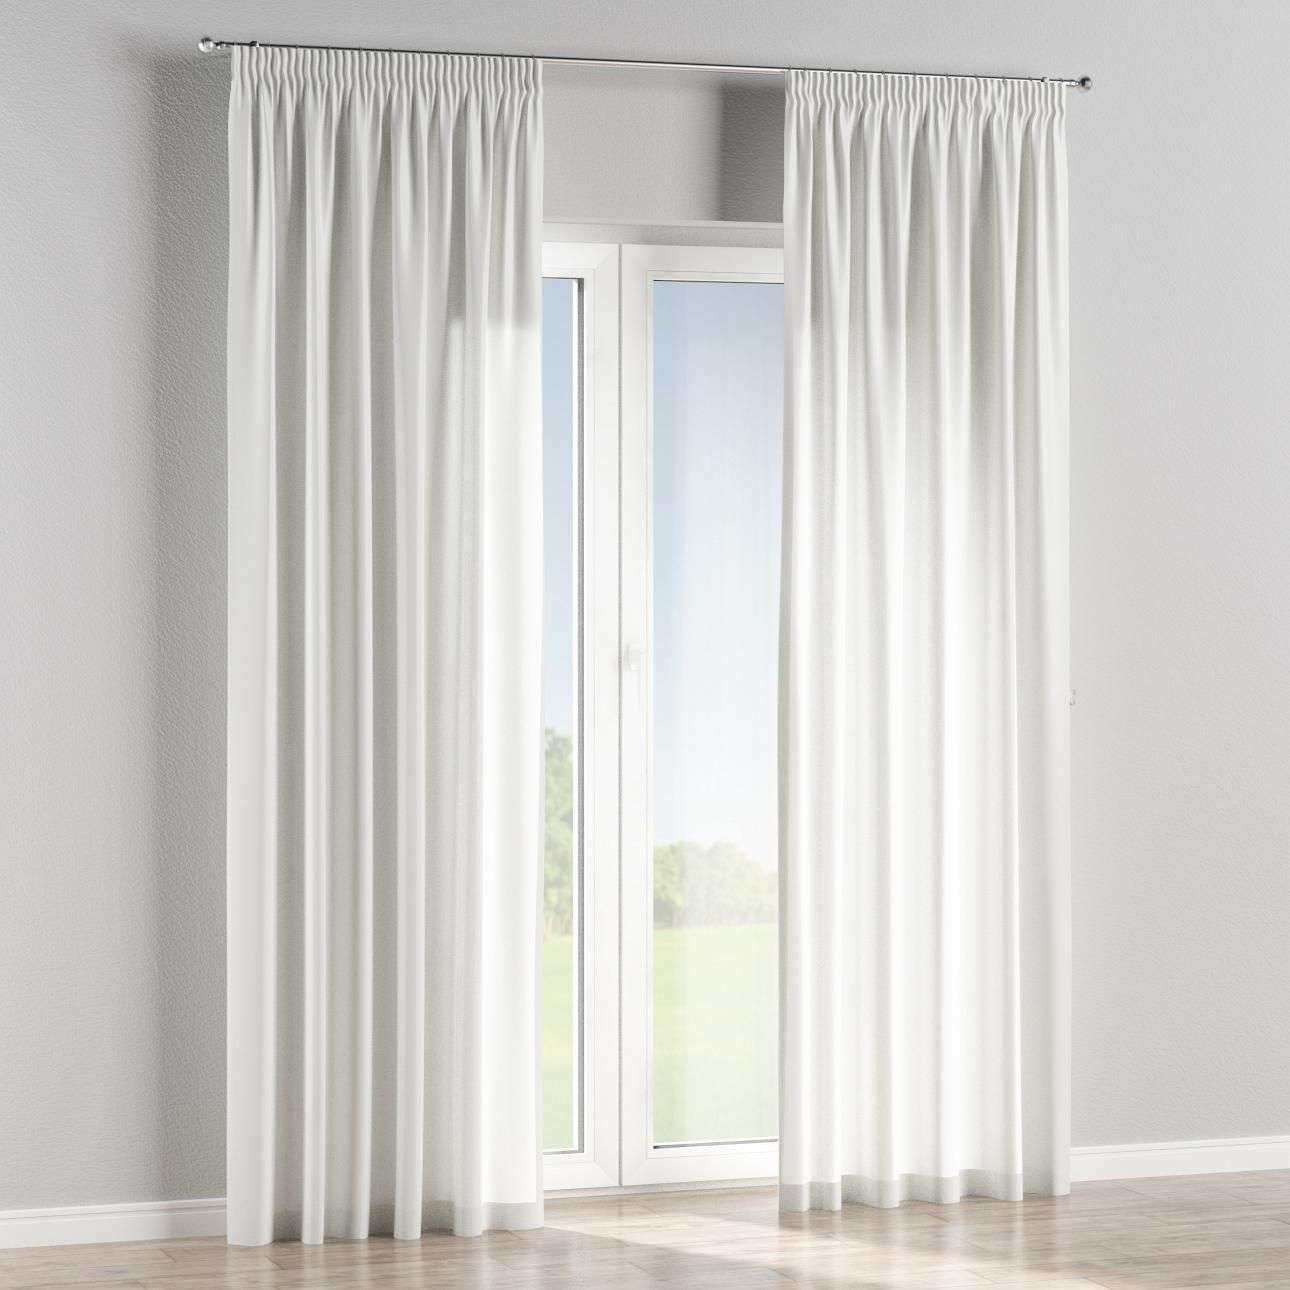 Pencil pleat curtains in collection Freestyle, fabric: 137-63